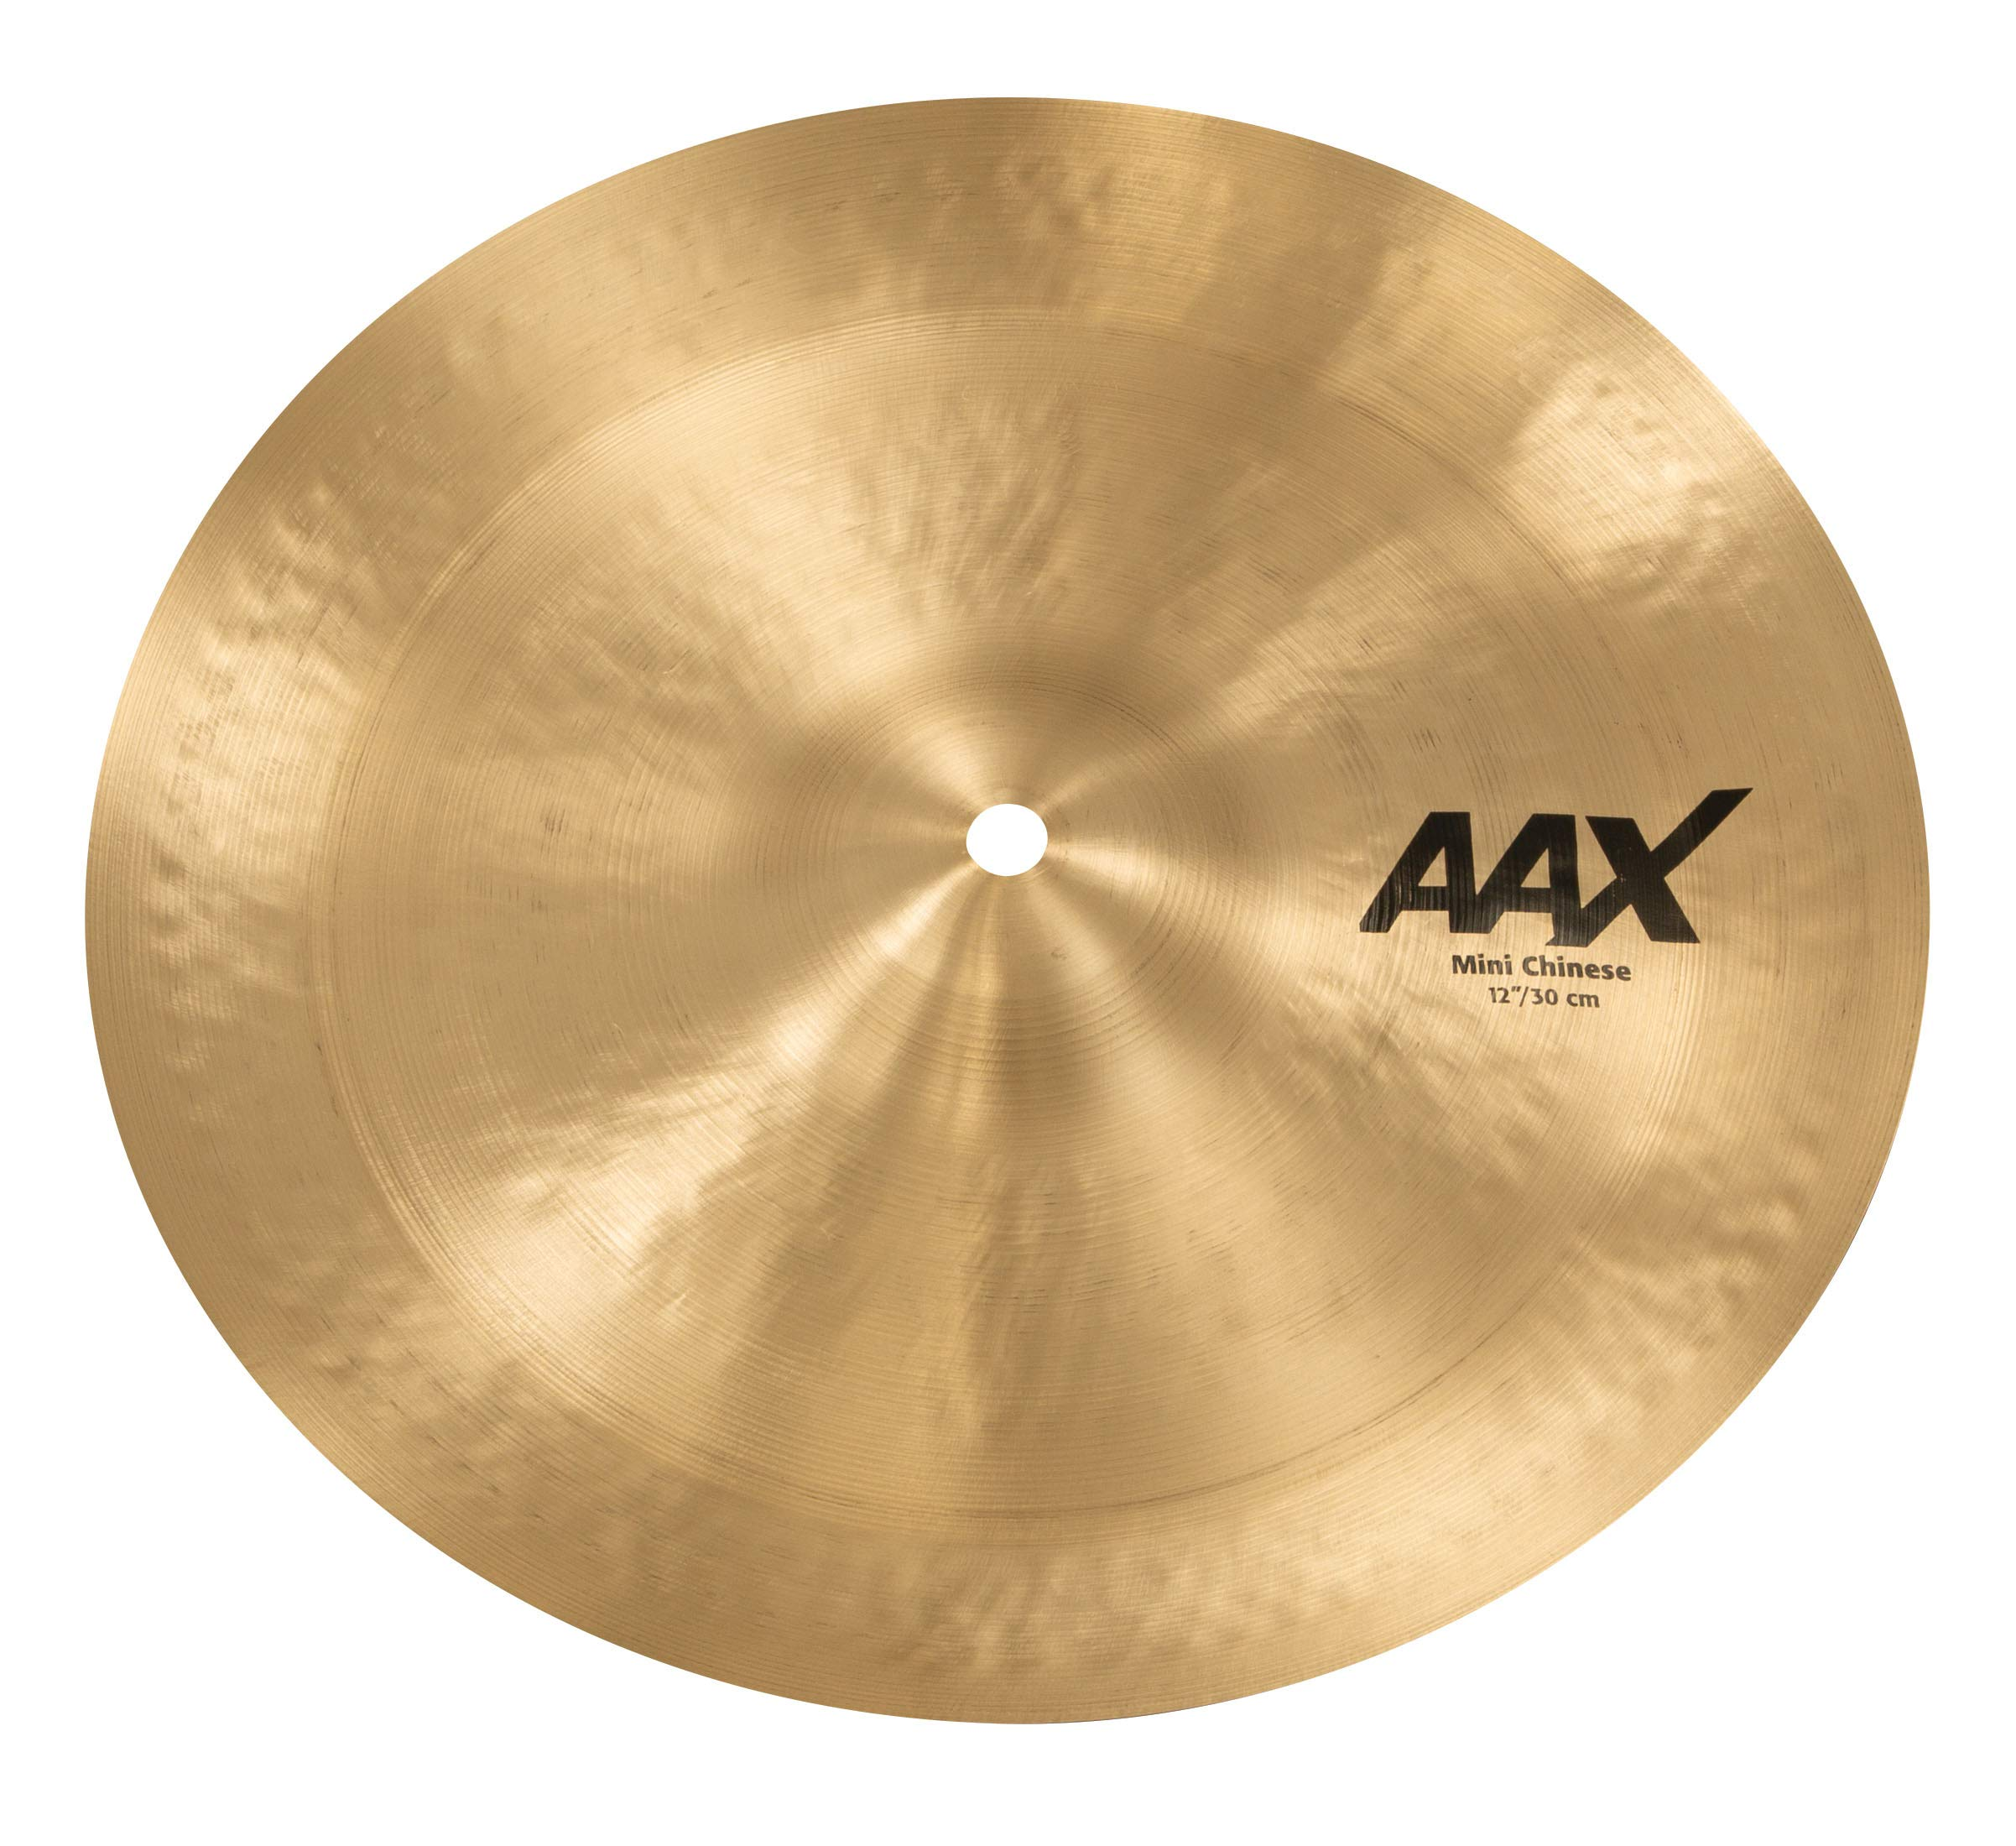 Sabian Cymbal Variety Package 21216X